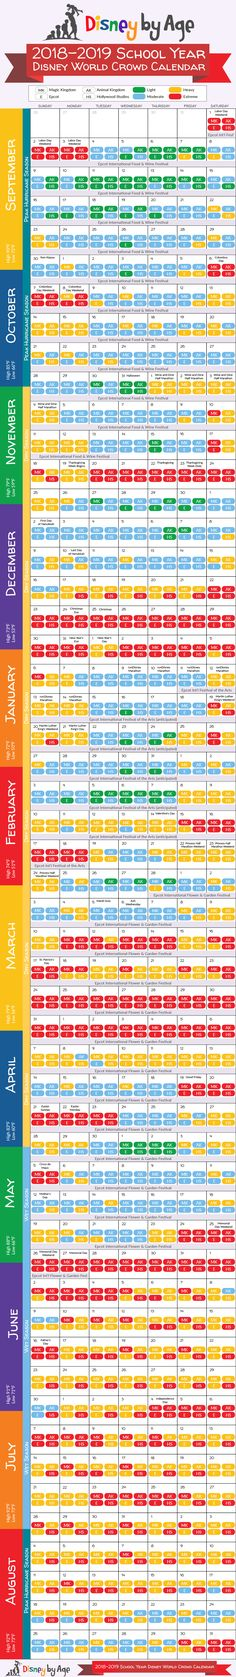 Walt Disney World Crowd Calendar 2018 and 2019. Plan your family vacation at the best time to visit the Happiest Place on Earth!